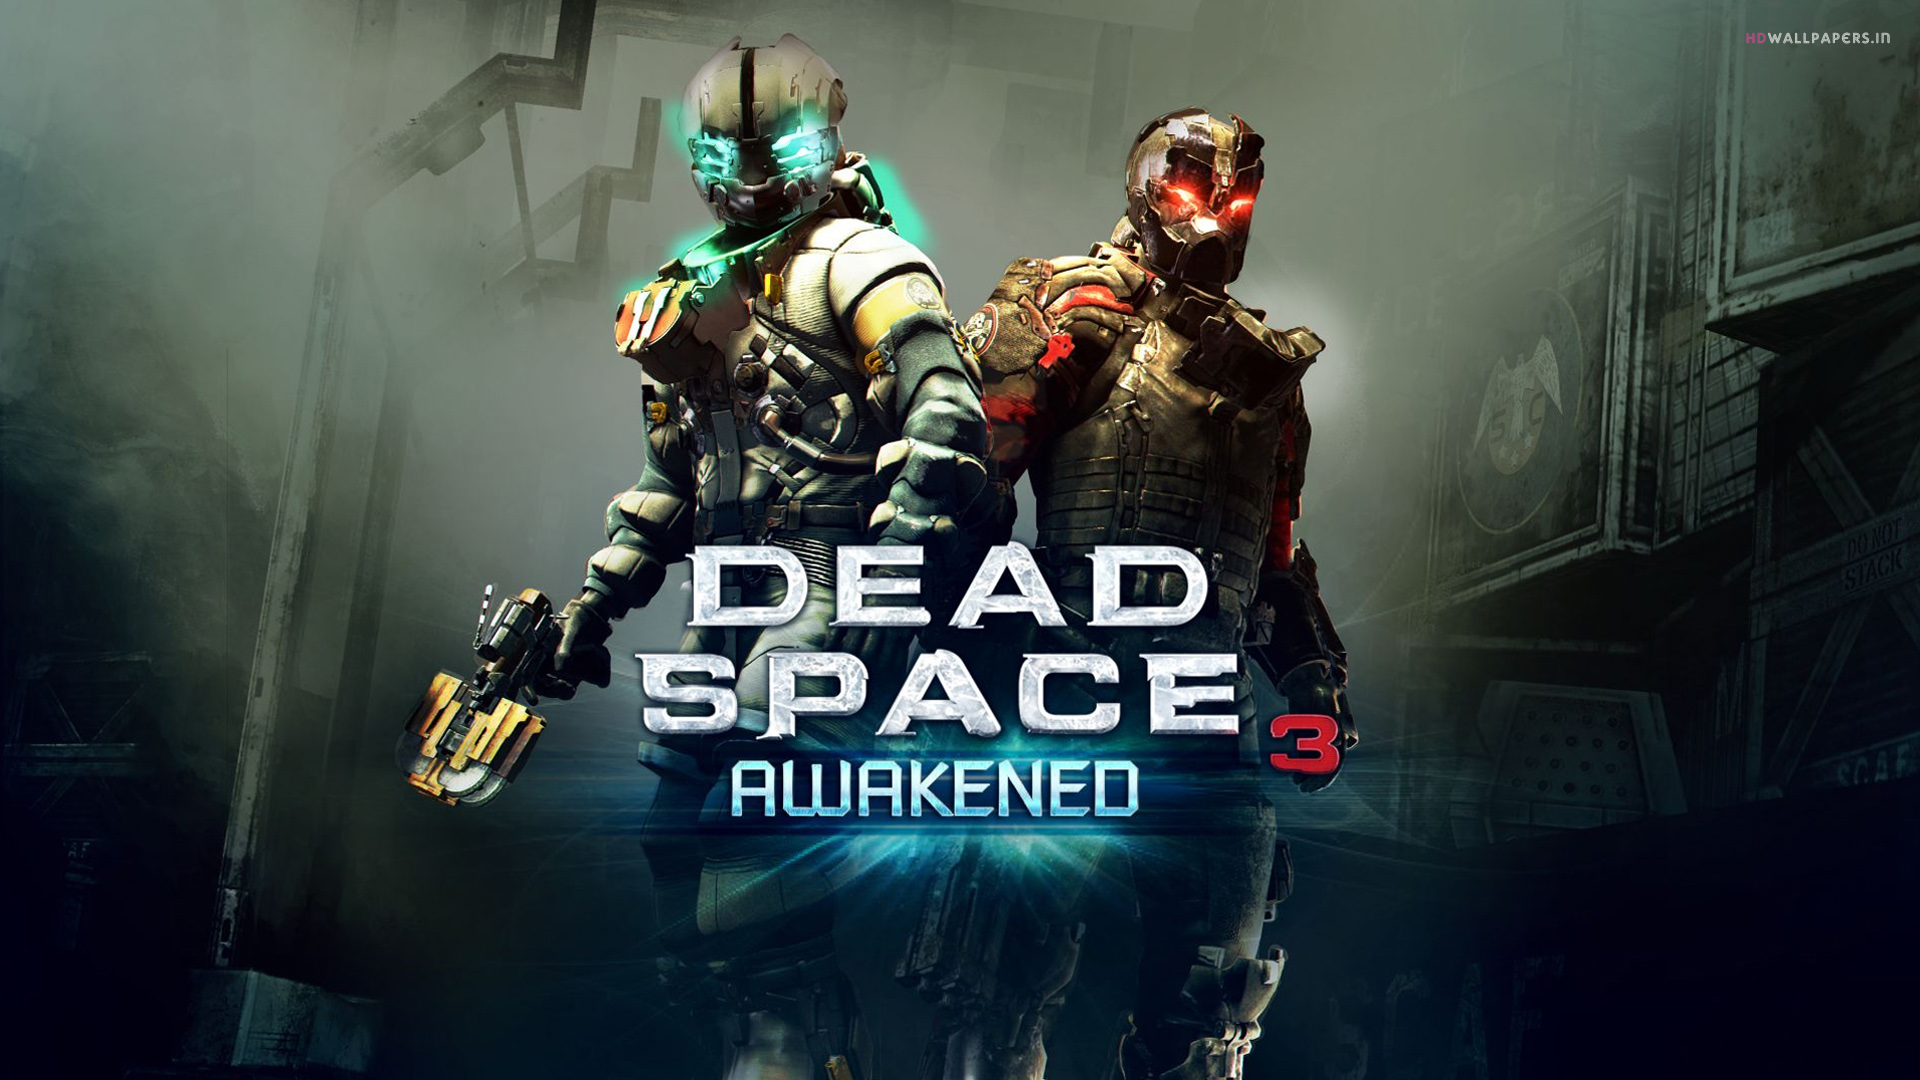 Dead Space 3 Awakened Wallpapers HD Wallpapers 1920x1080